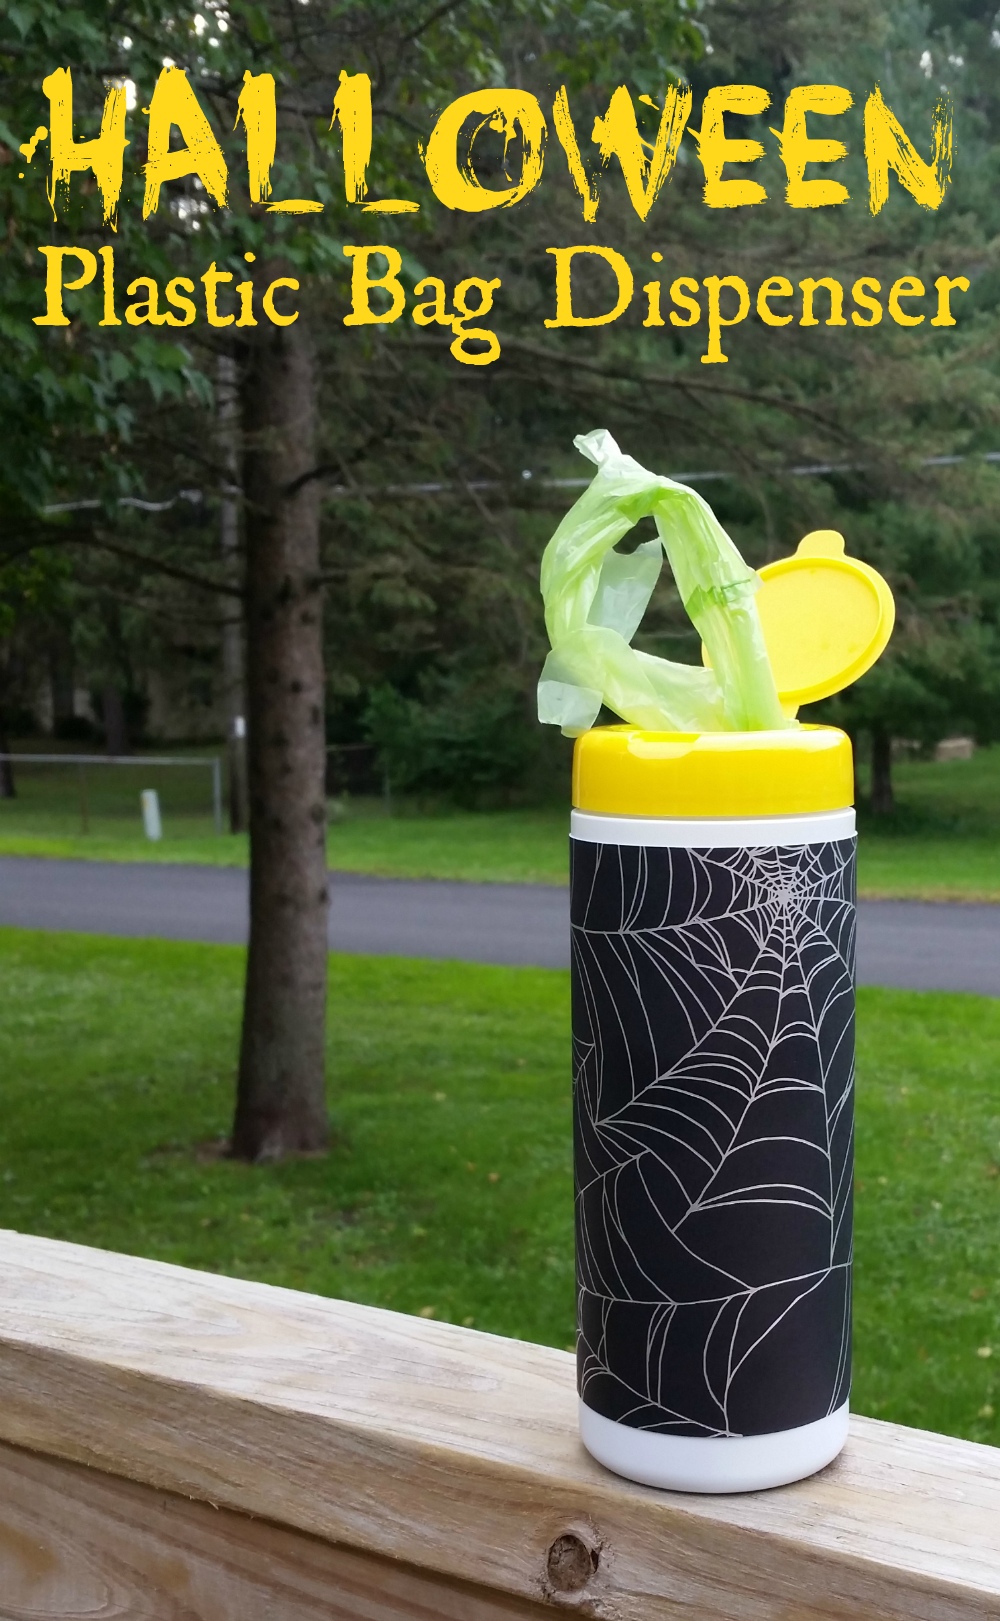 Diy Halloween Plastic Bag Dispenser Lysol Giveaway Outnumbered 3 To 1